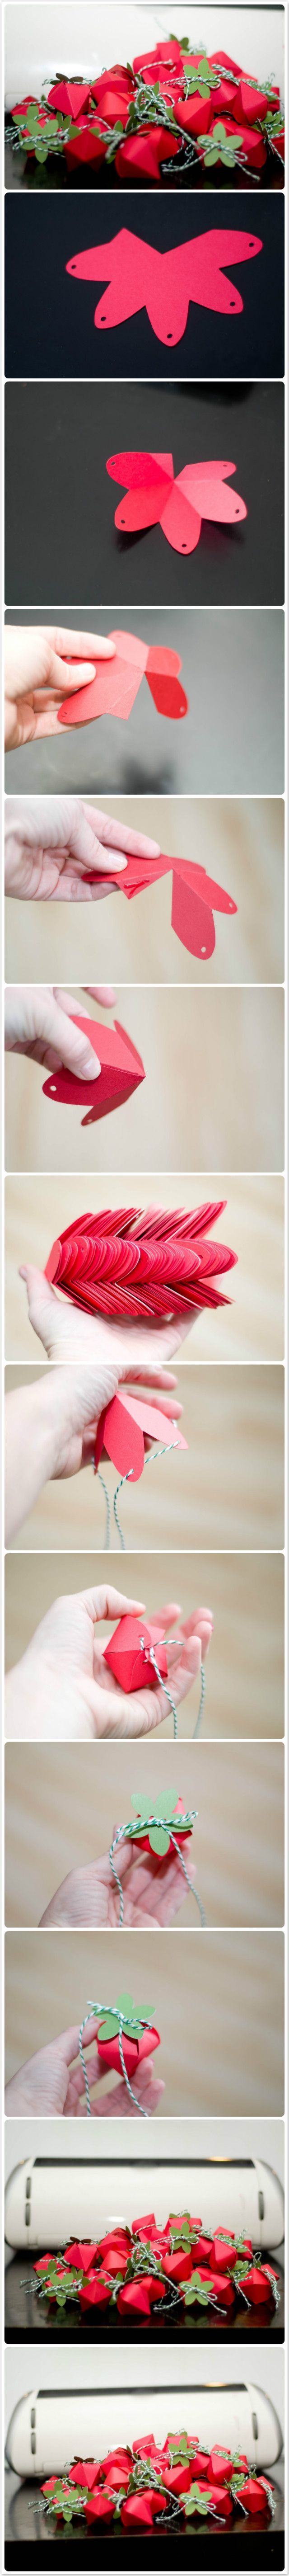 Paper Strawberry Box - We Like Craft